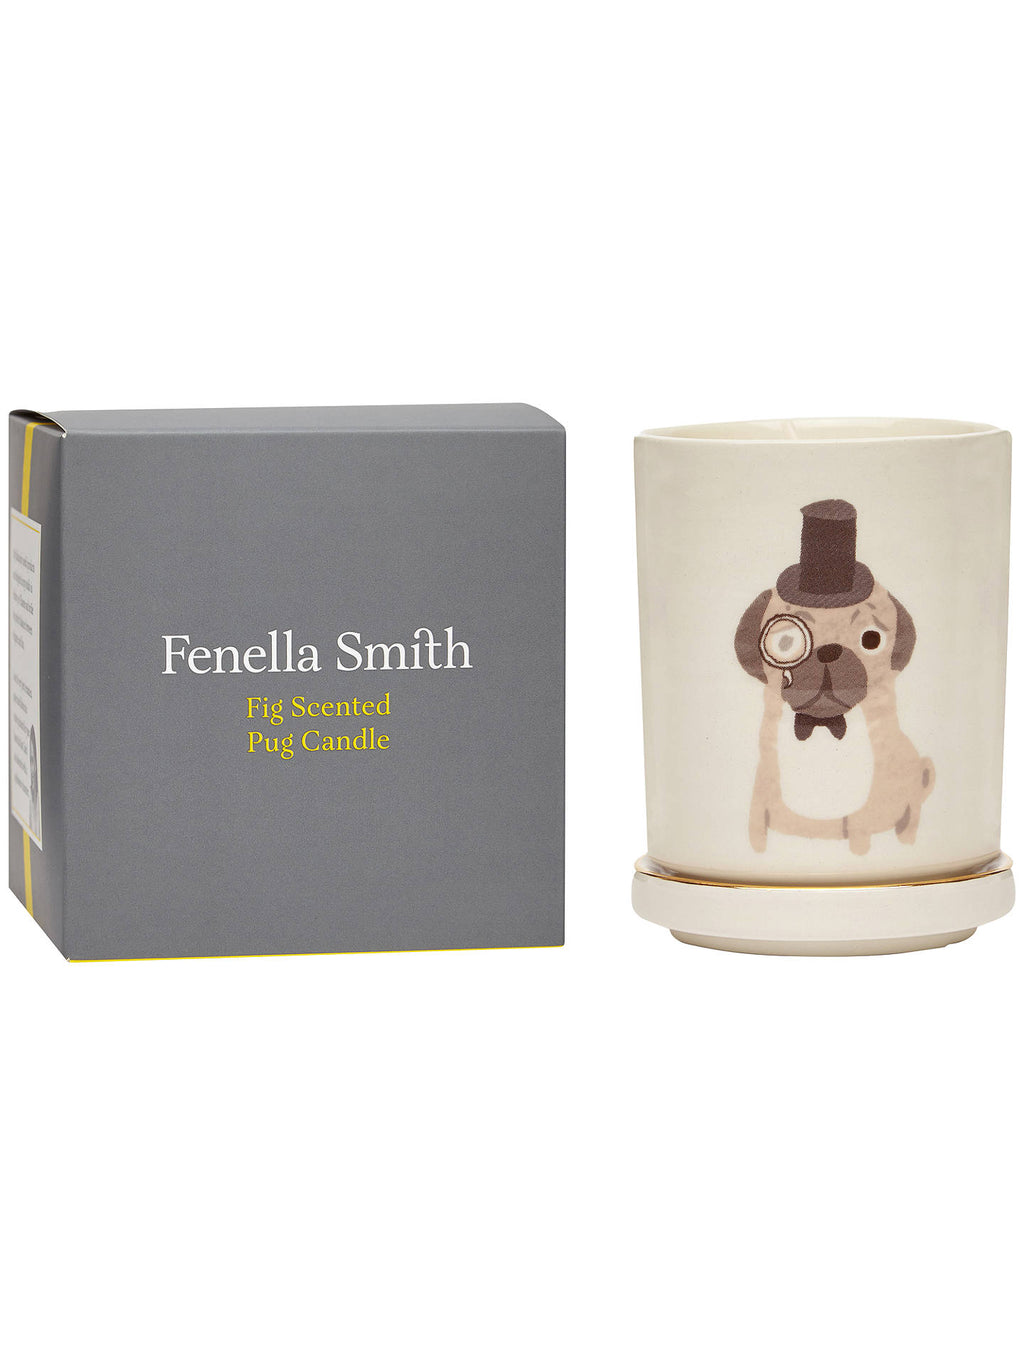 Fenella Smith Pug Candle